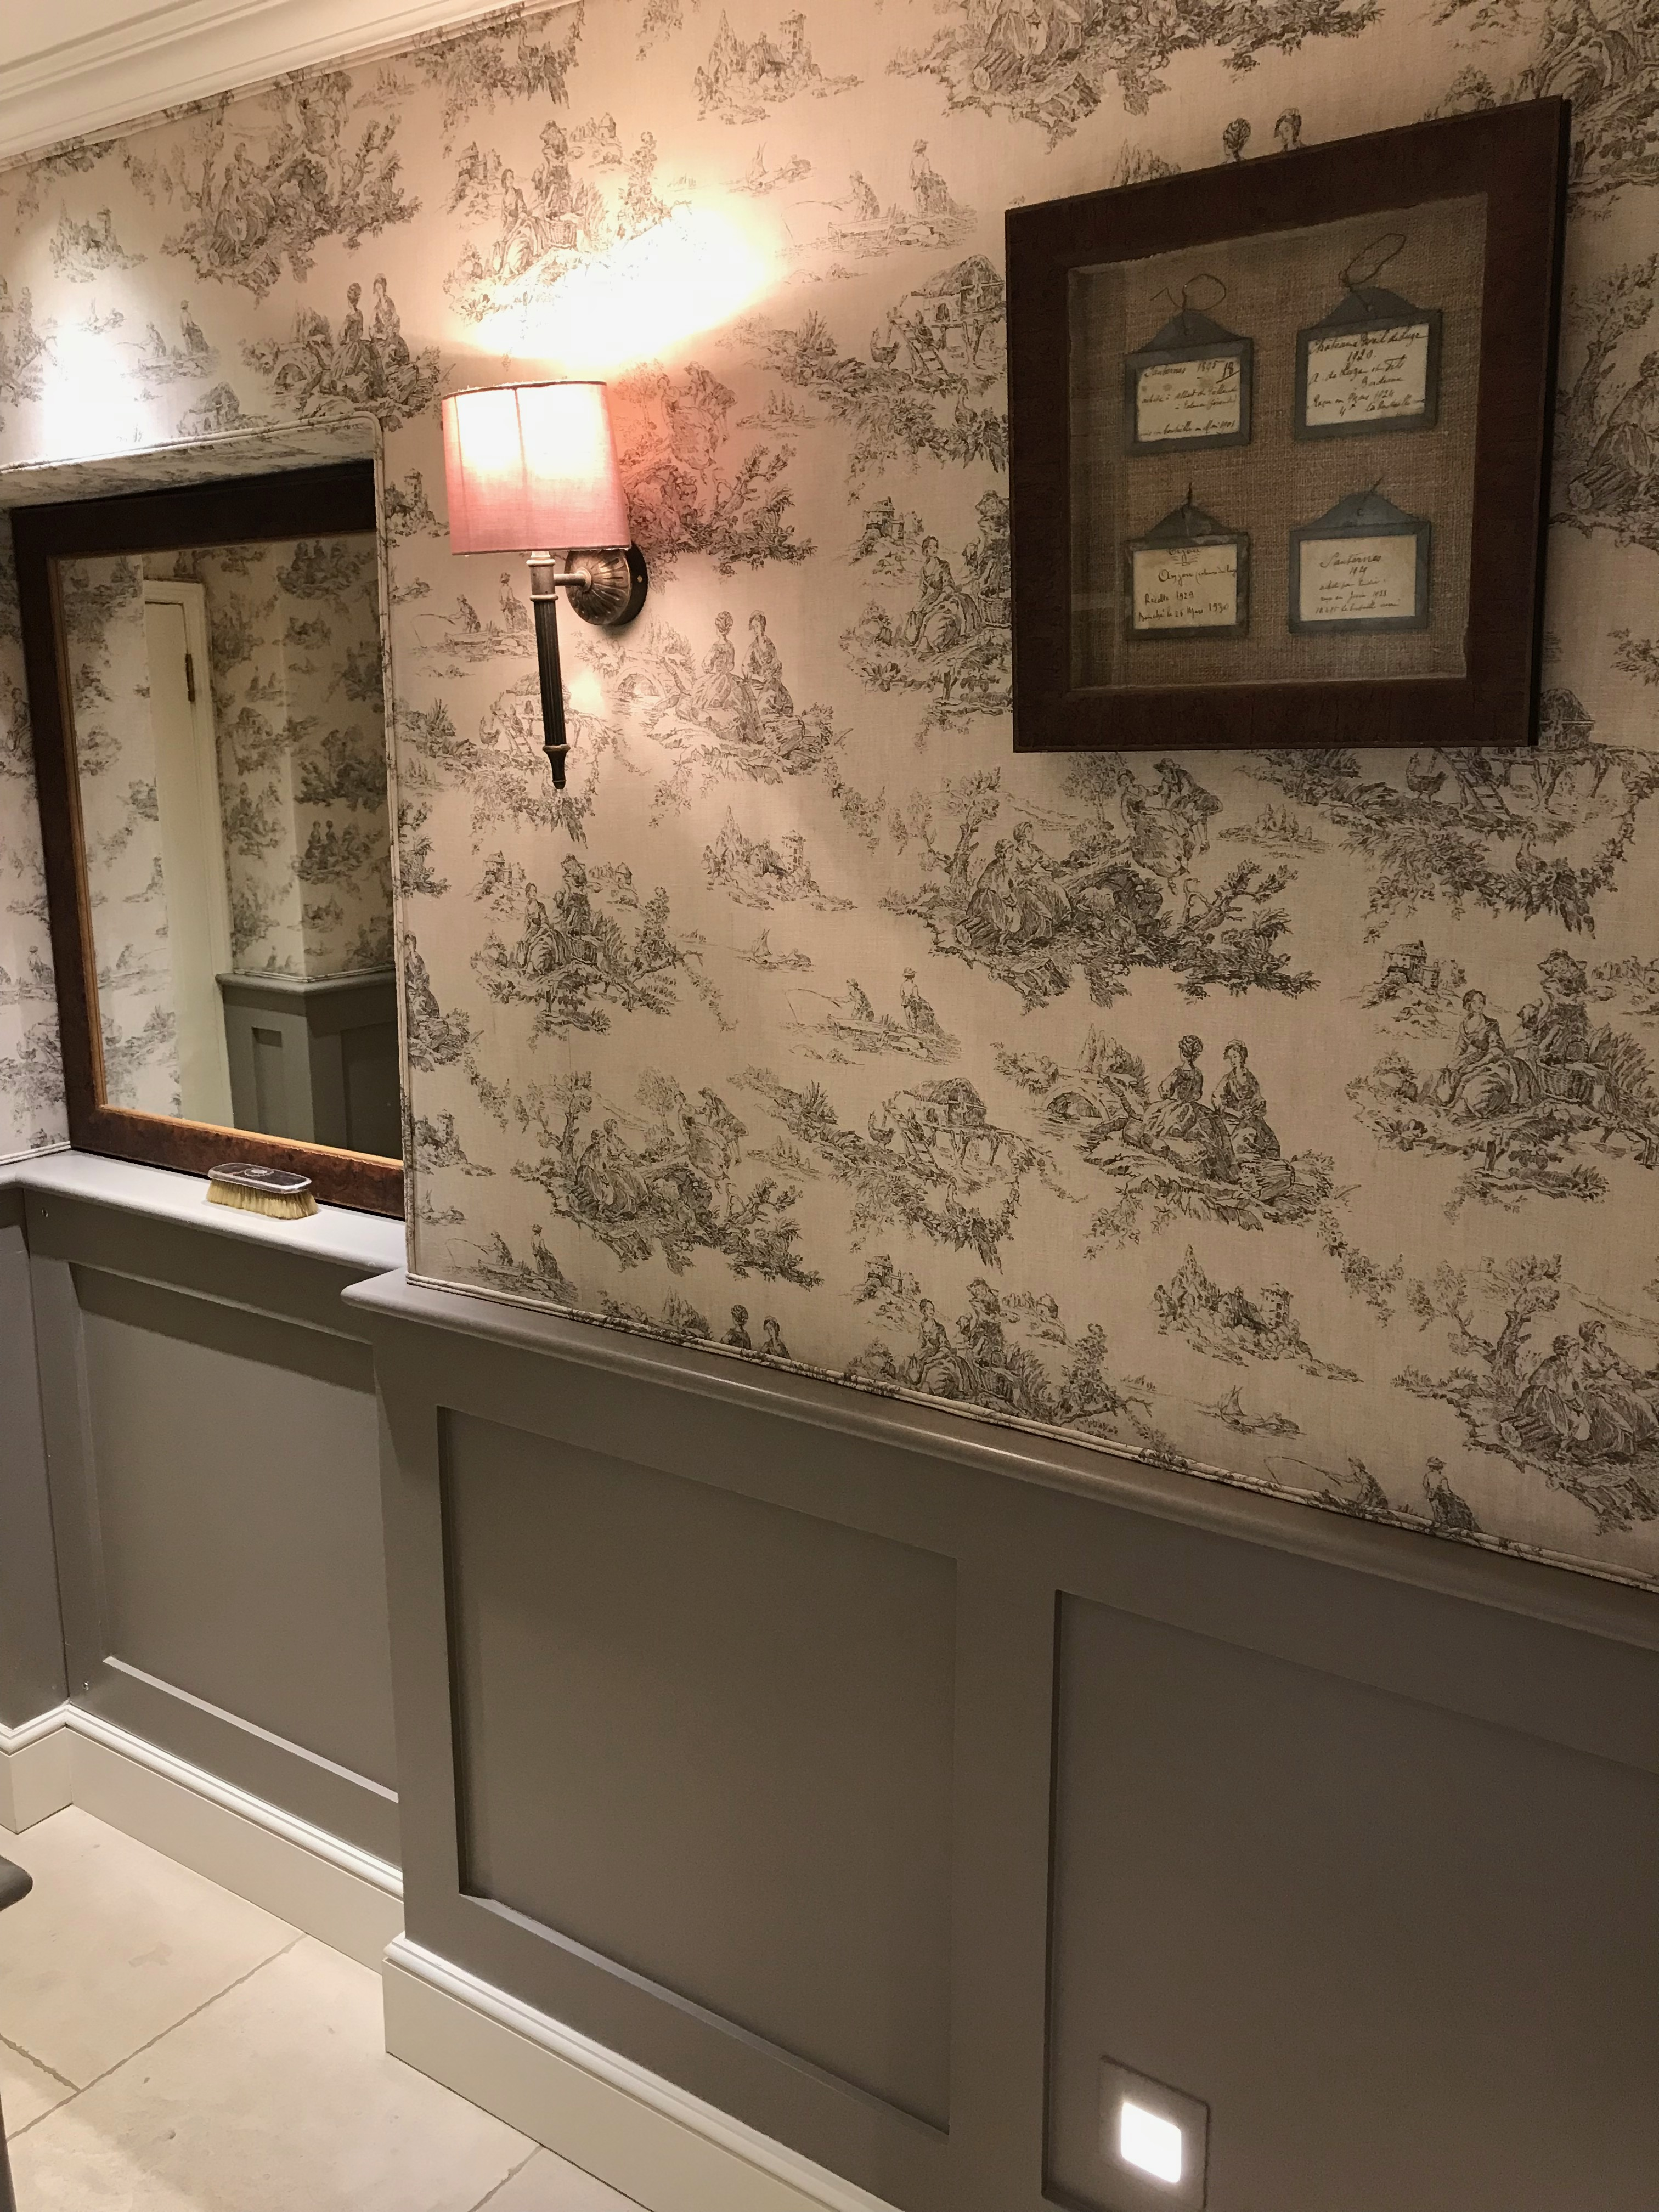 Fabric Walling in Cloakroom